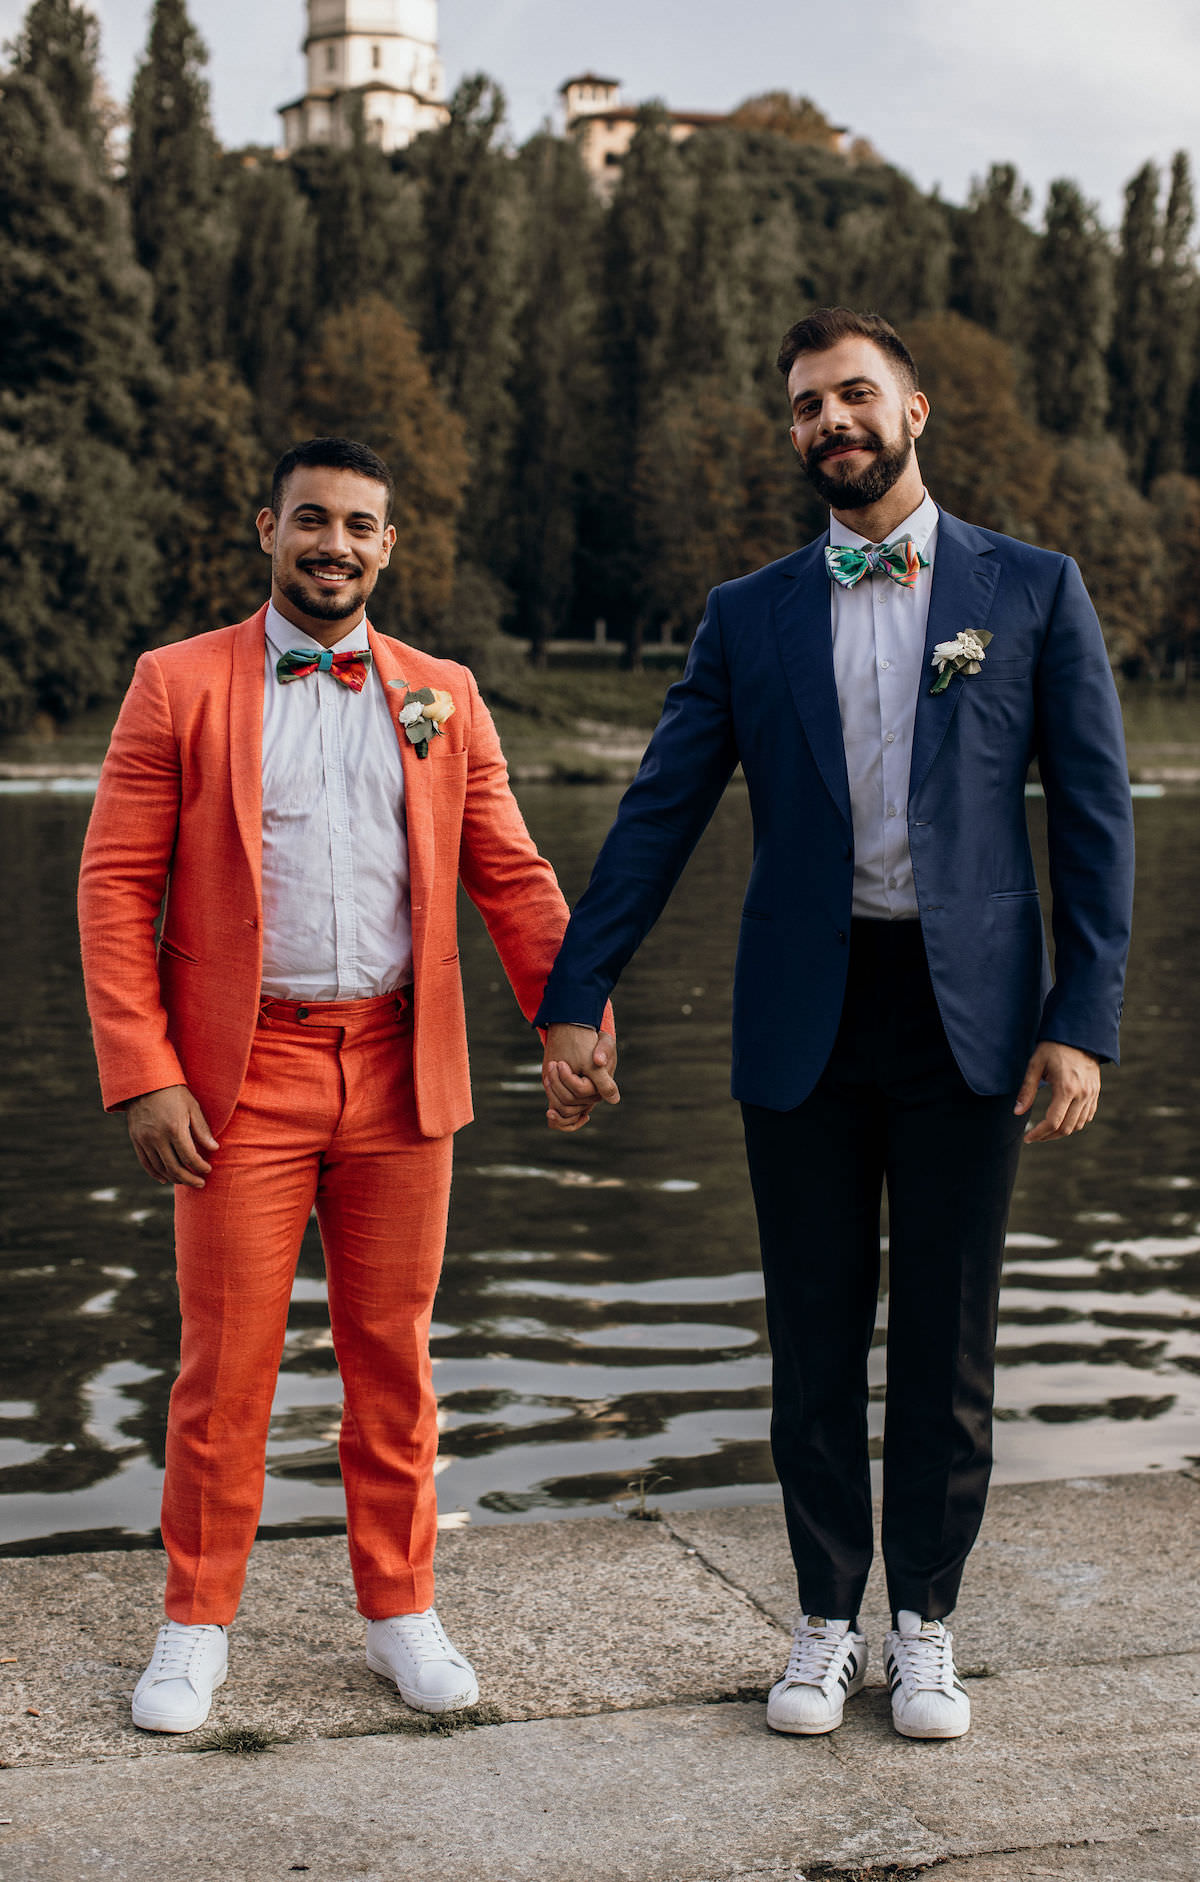 Colorful Gay engagement session - Photography: Giada Joey Cazzola